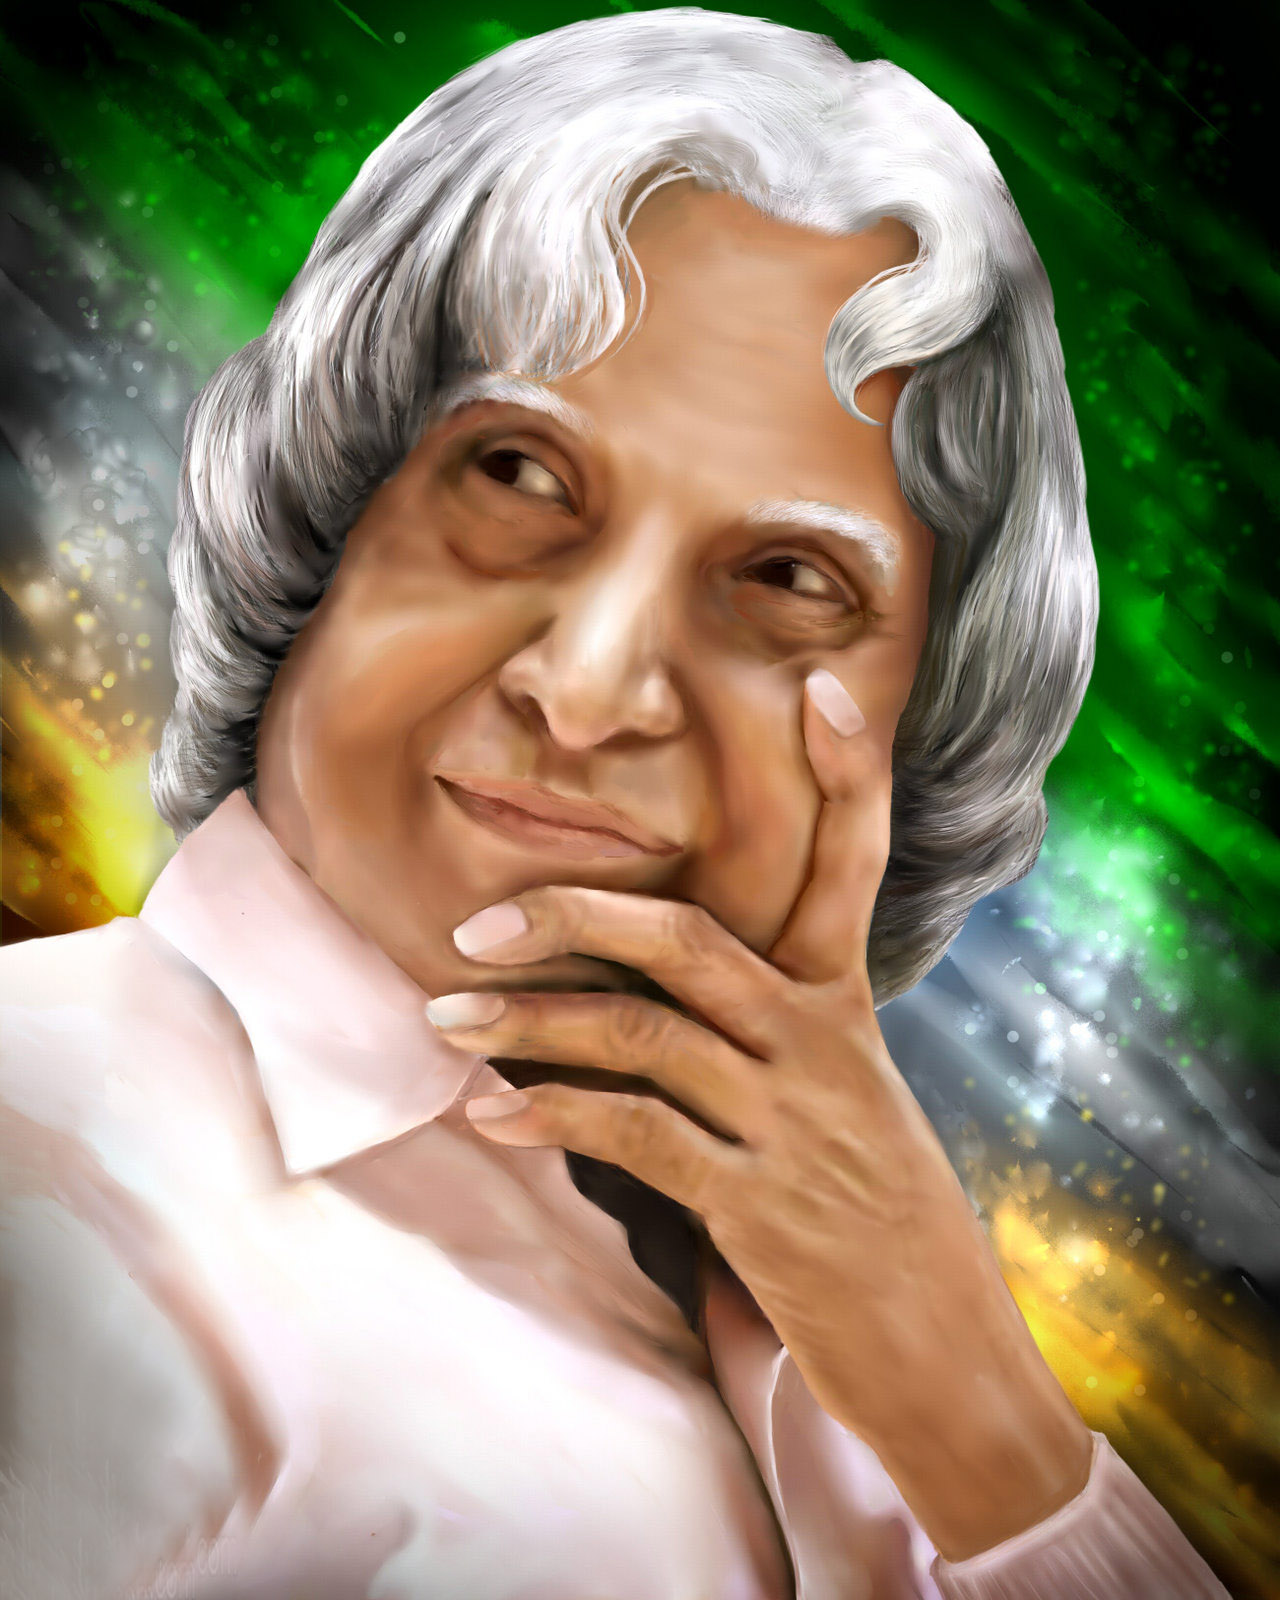 Dr Abdul Kalam Quotes Wallpapers Apj Abdul Kalam Quotes That Will Inspire You For Life